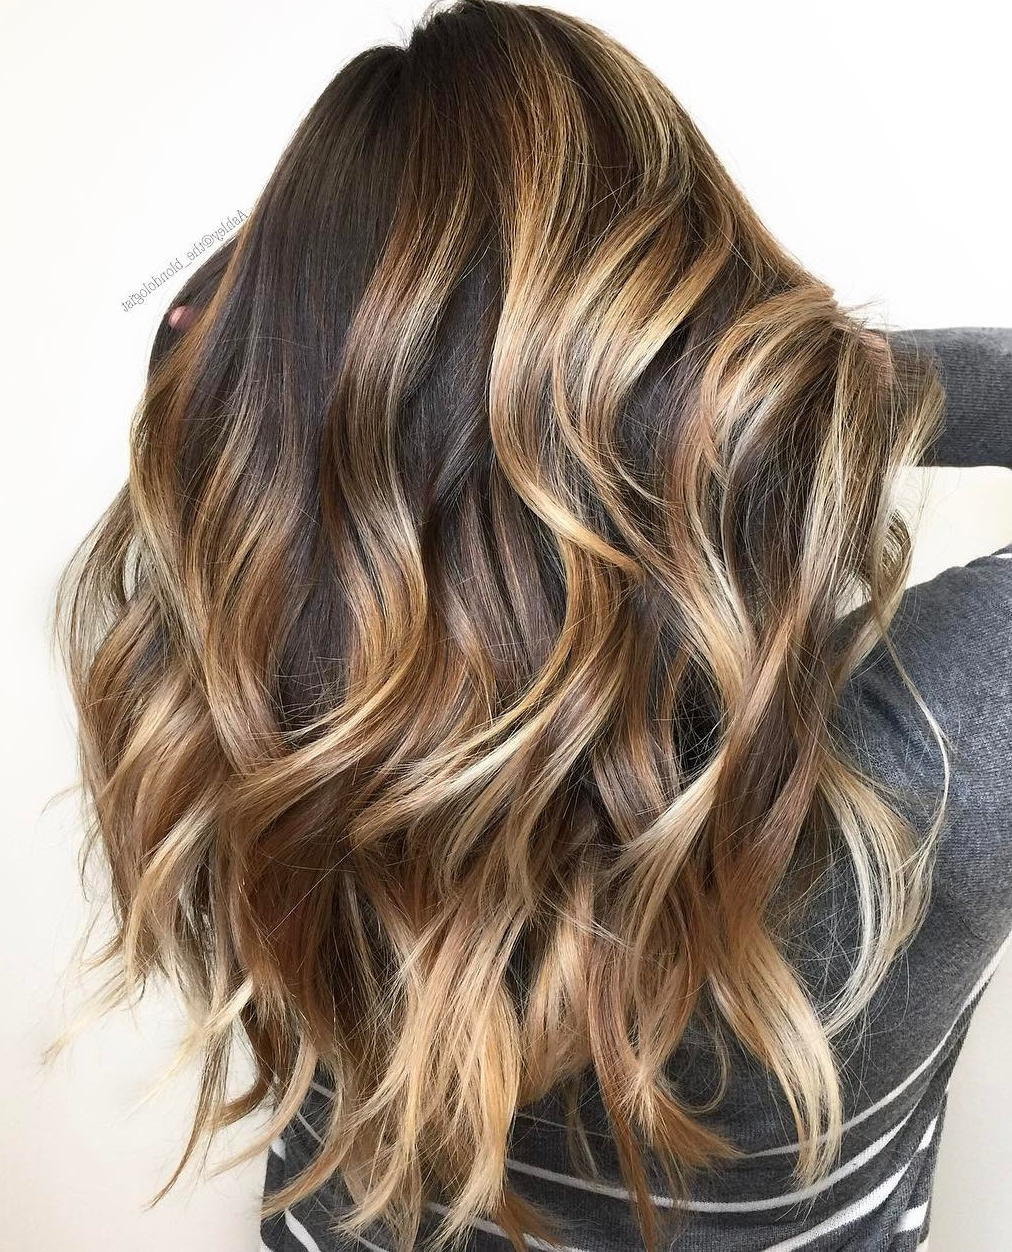 Hairstyles And Haircuts For Thick Hair In 2018 — Therighthairstyles With Most Popular Sassy Medium Haircuts For Thick Hair (View 10 of 20)